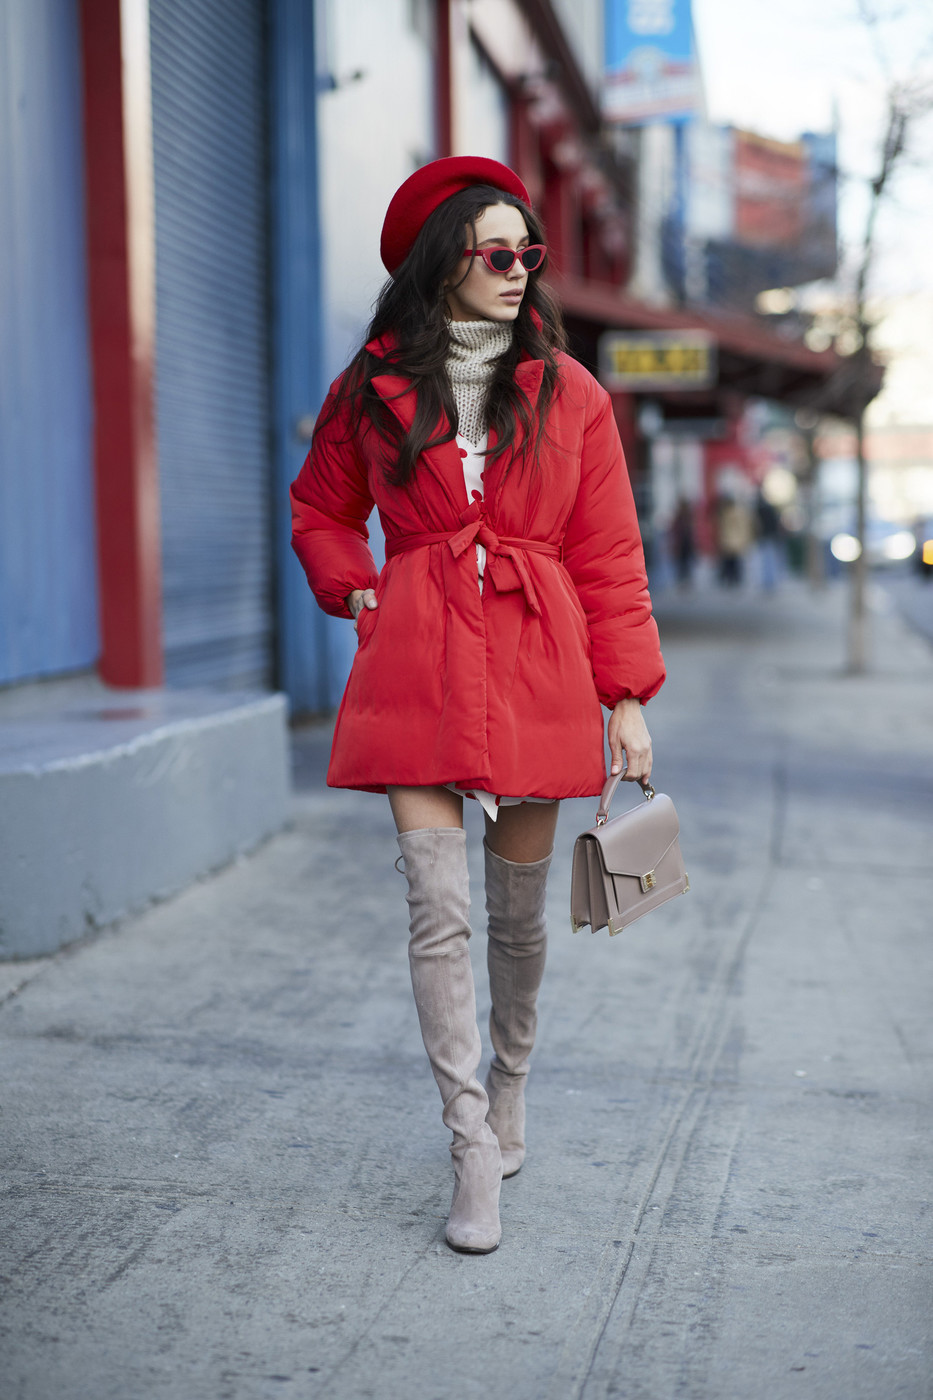 MORE NYFW: Must-See Street Style from NYFW